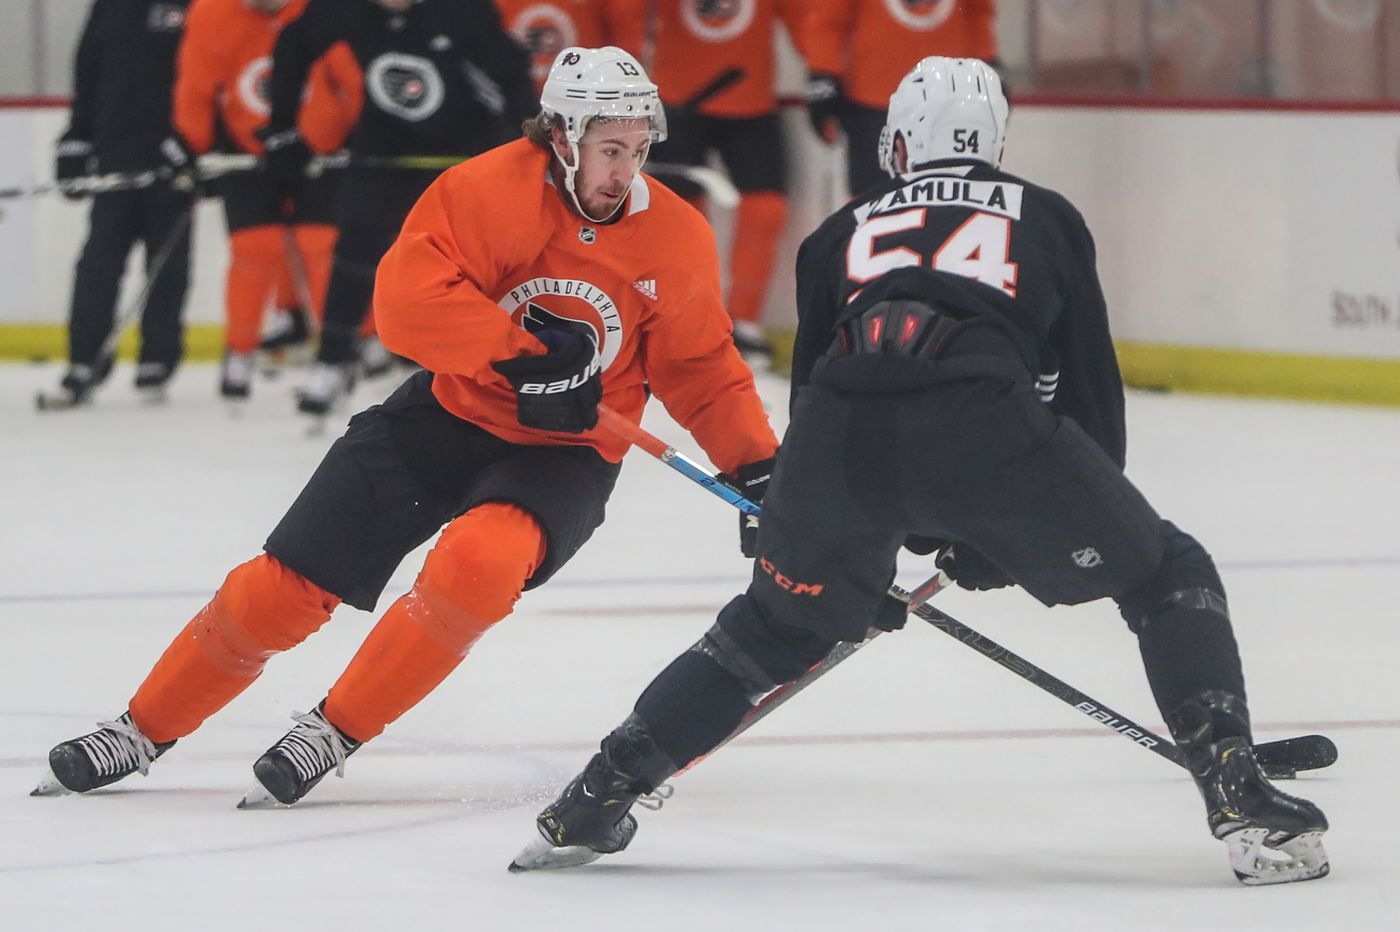 Kevin Hayes, Frost Line on display as Flyers open exhibition season Monday at home